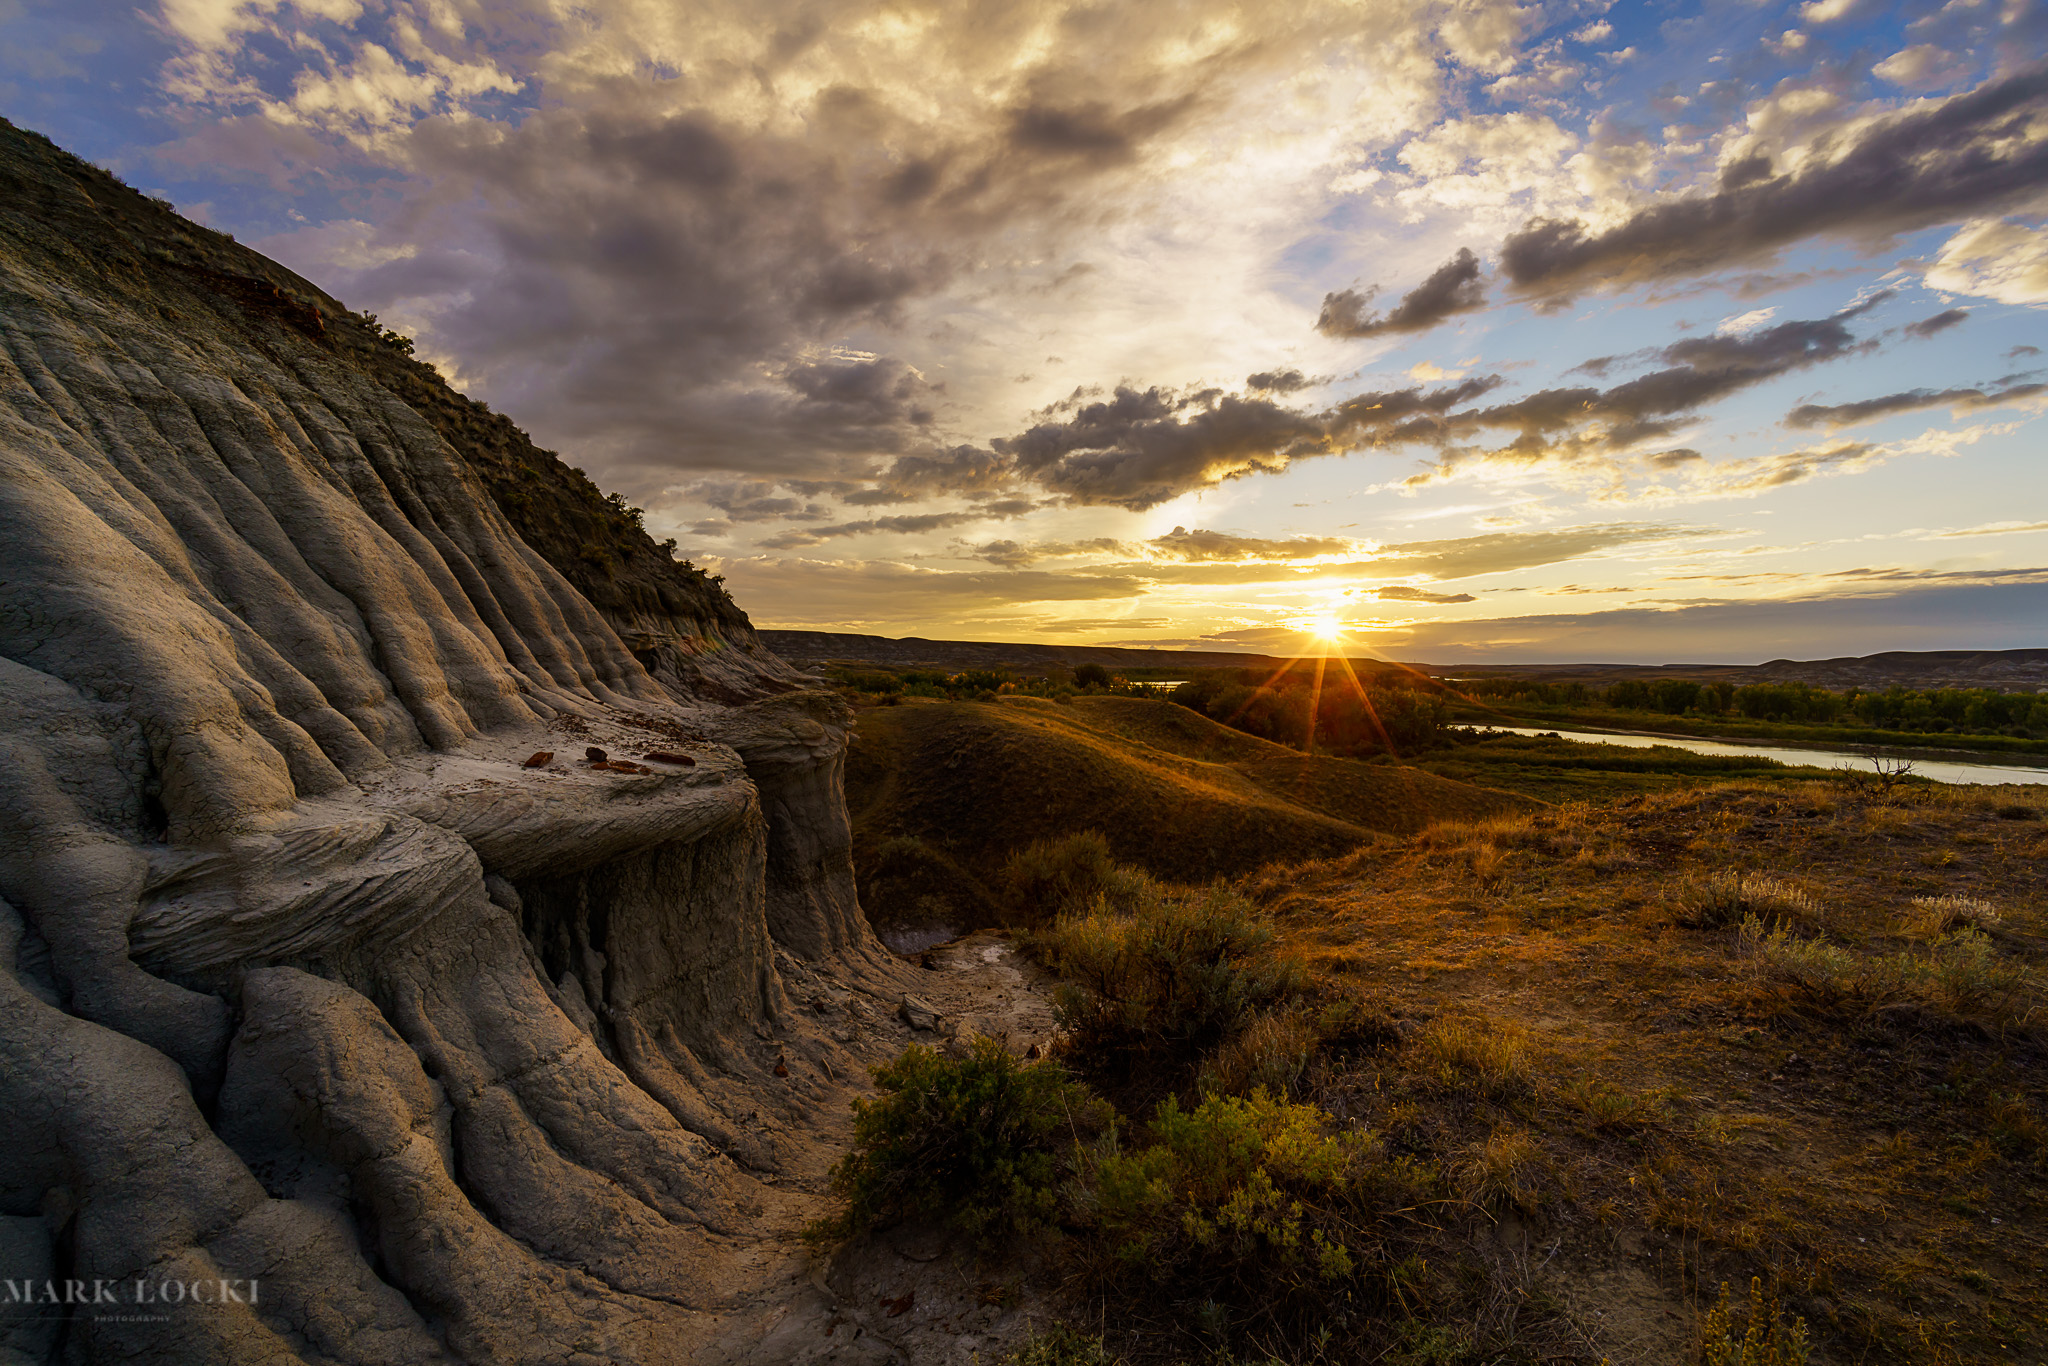 Badlands Sunset.jpg